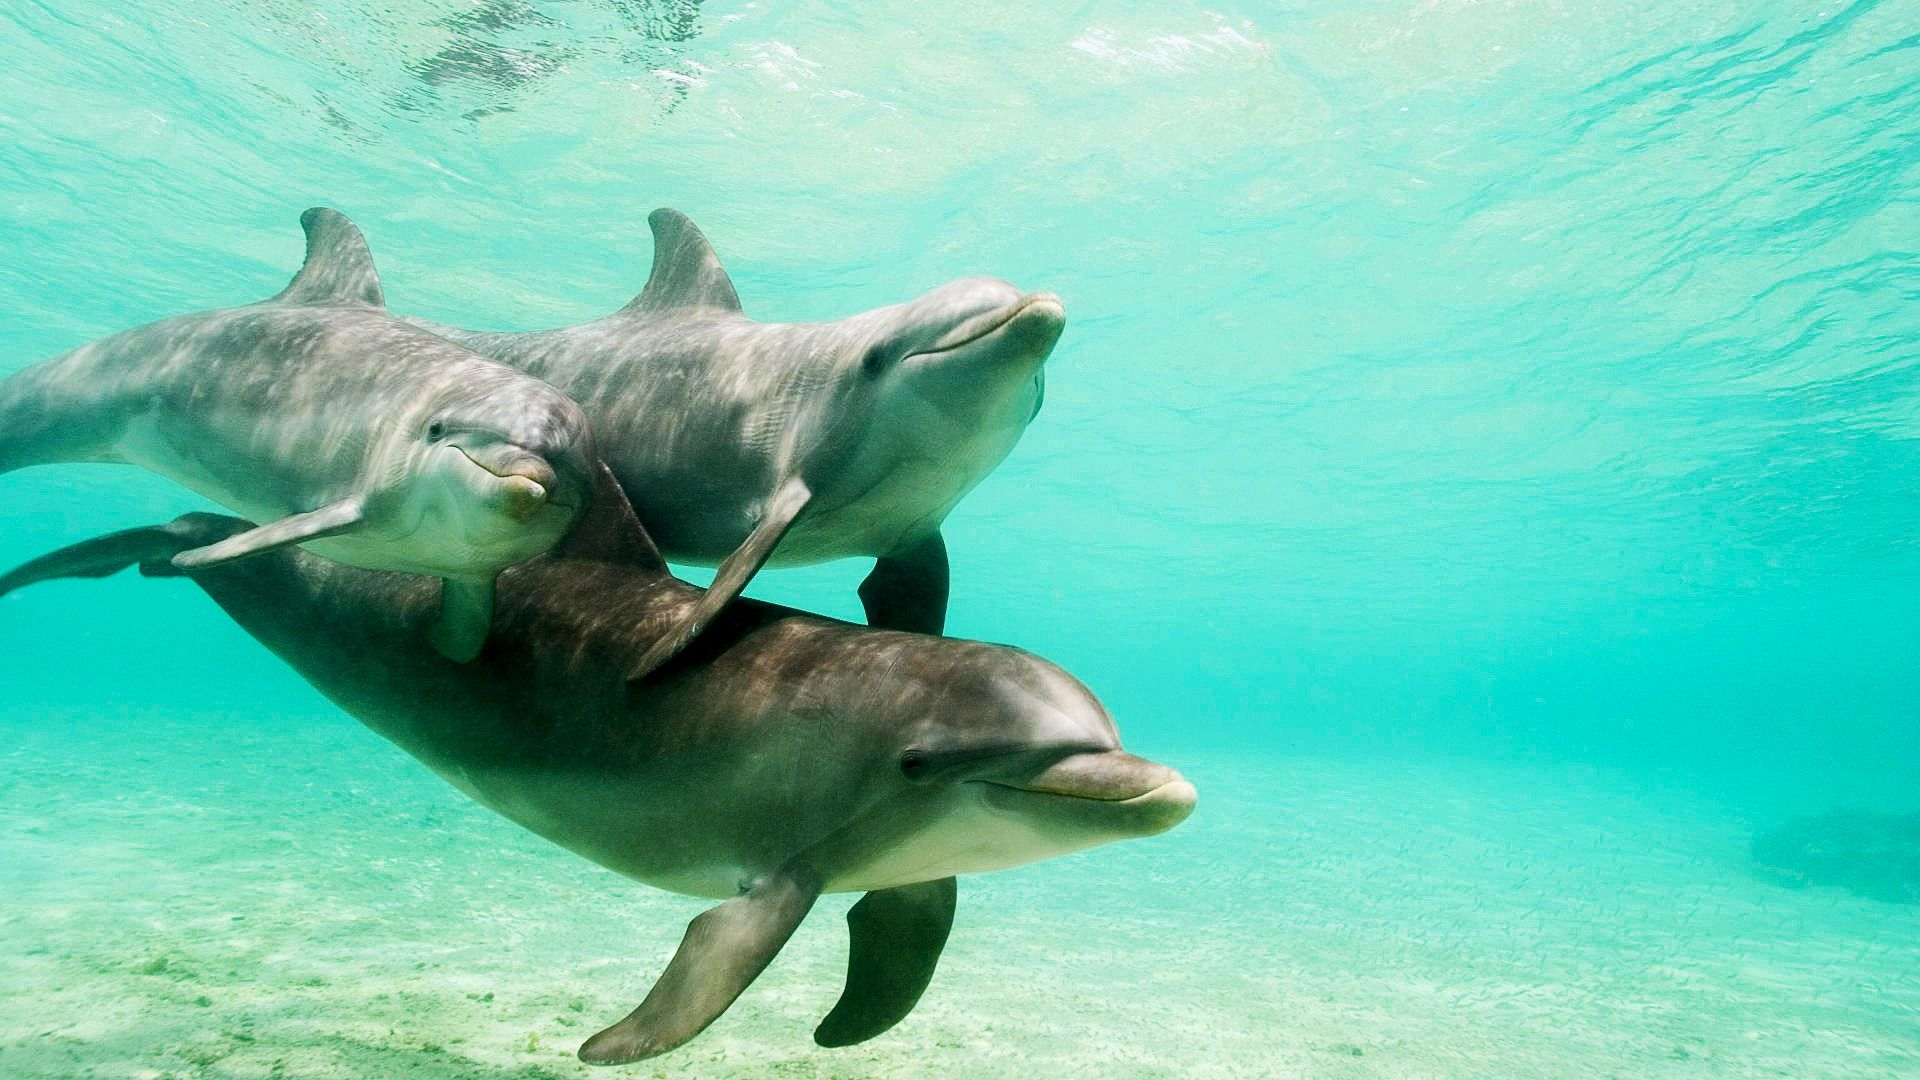 Photo Of Dolphins In The Sea